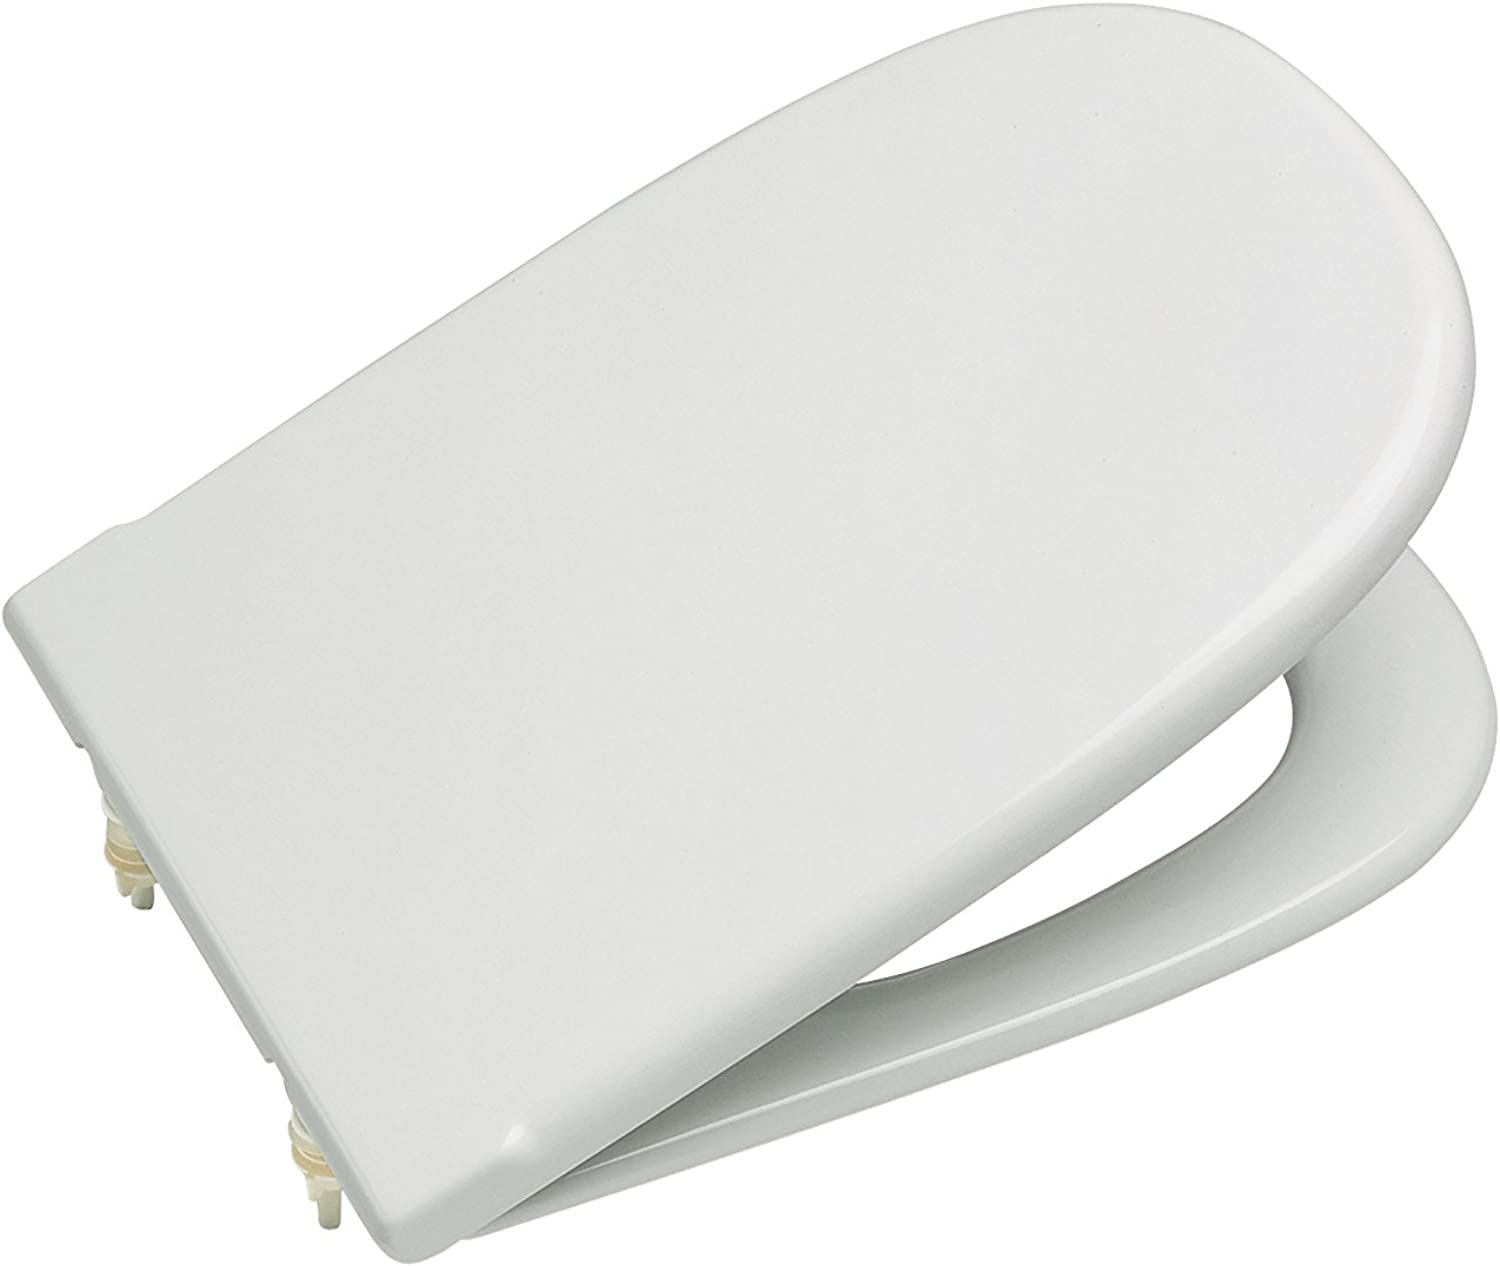 Roca Old Design Dama Replacement WC Toilet Seat with Standard Bar Hinge 801327004 White